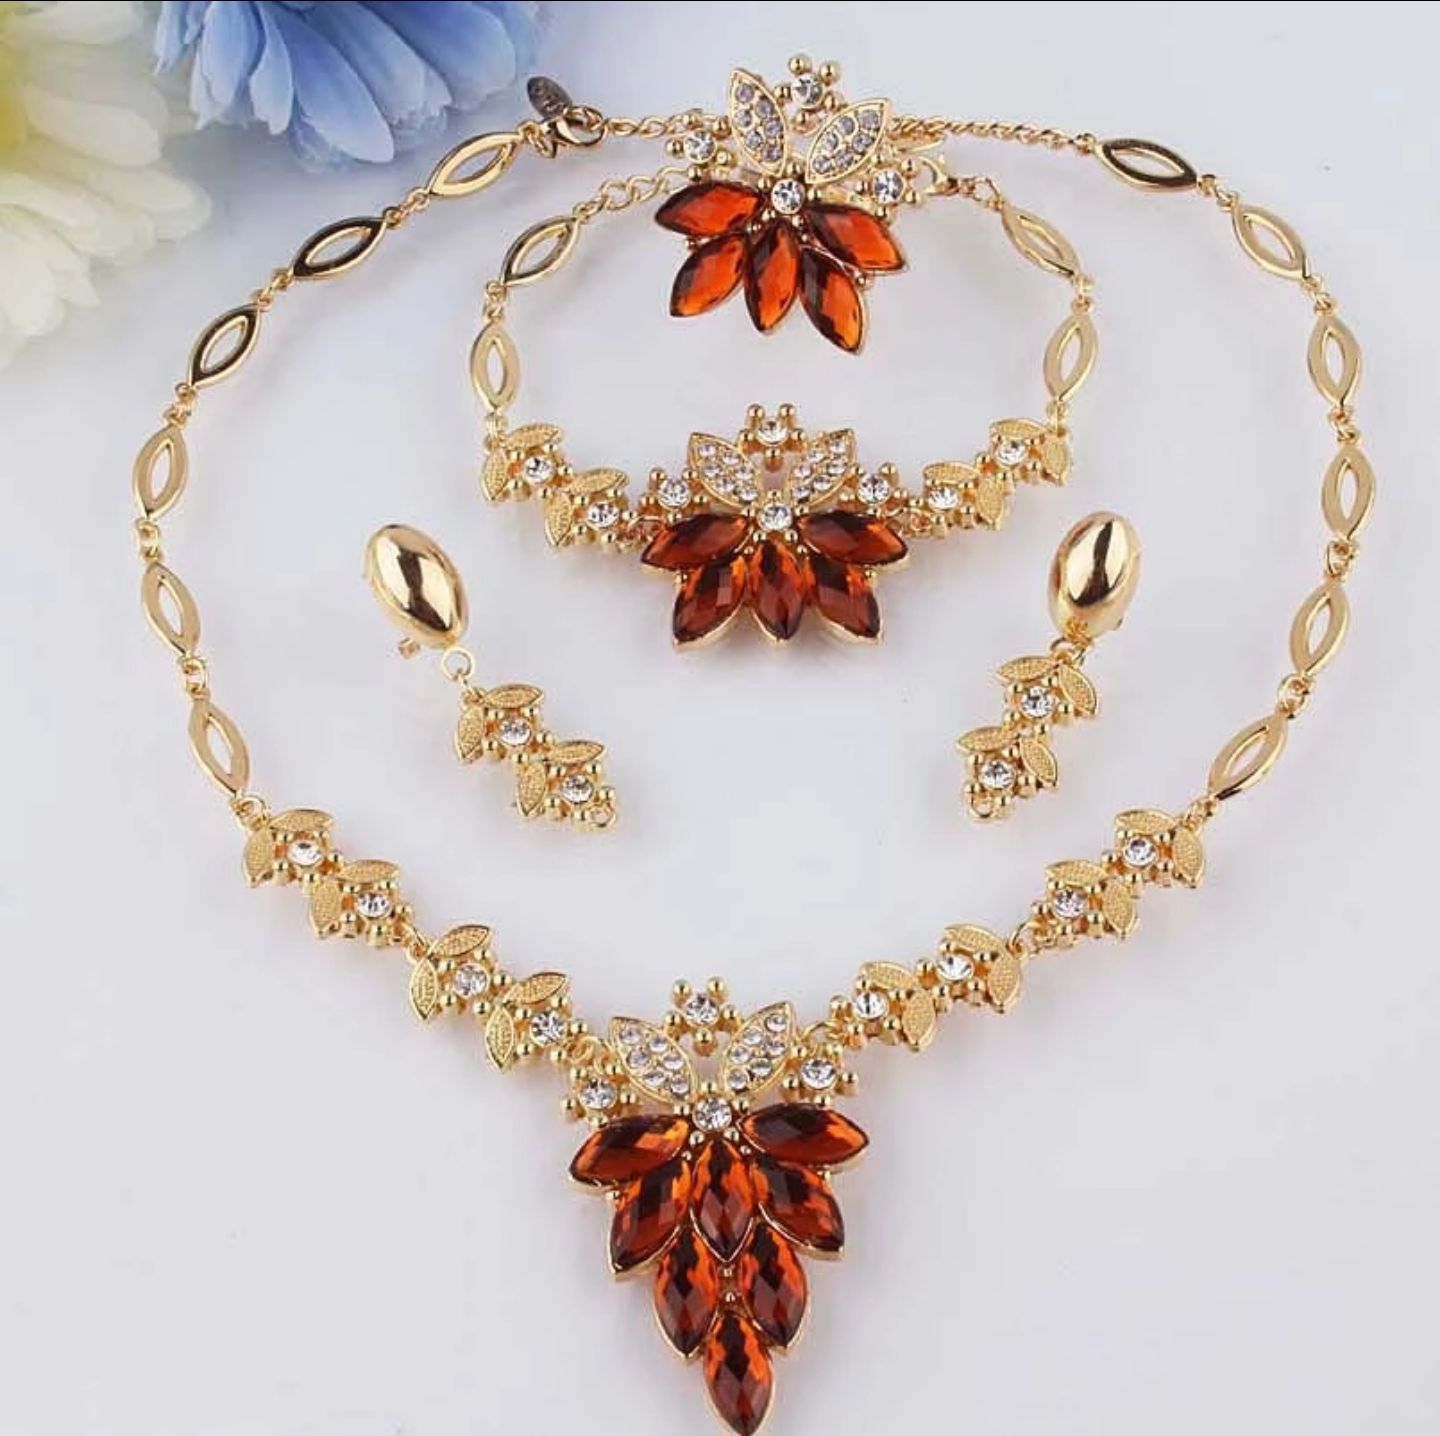 New elegant look luxurious gold plated necklace set pieces